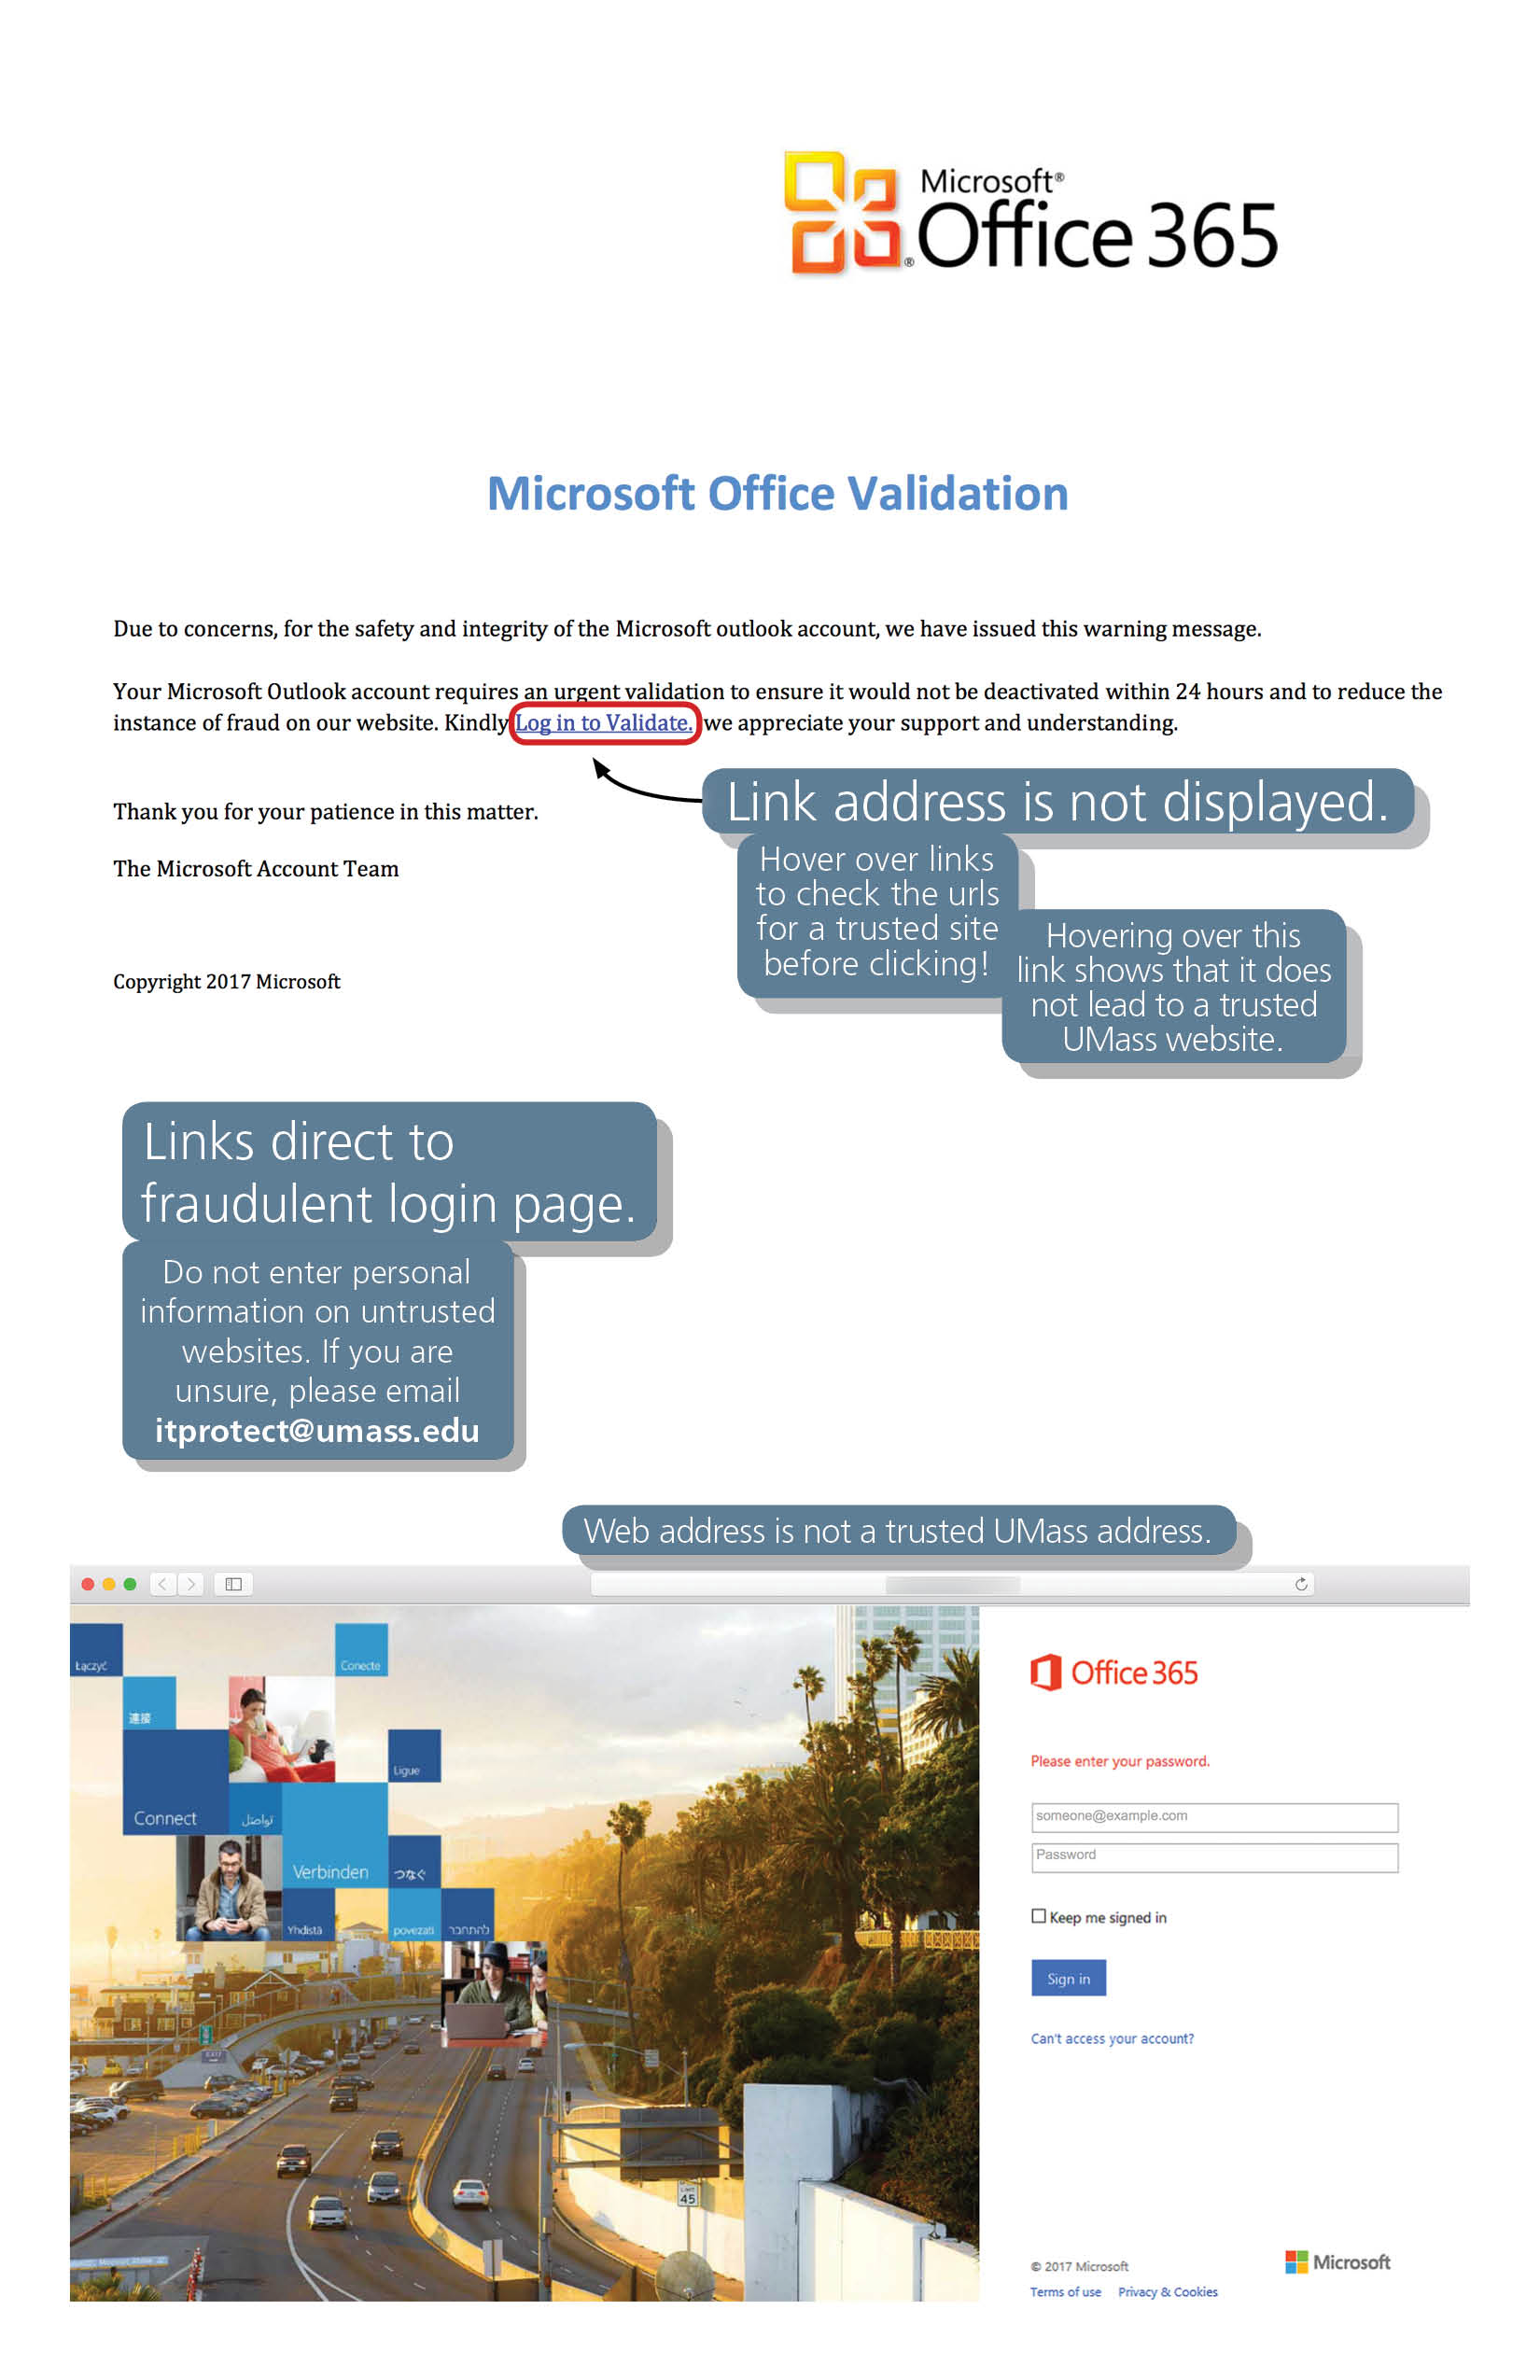 Phishing example showing an email attachment with a link. The message instructs the recipient to click a link which does not show its address. The link directs to a fake version of the Office 365 login page.